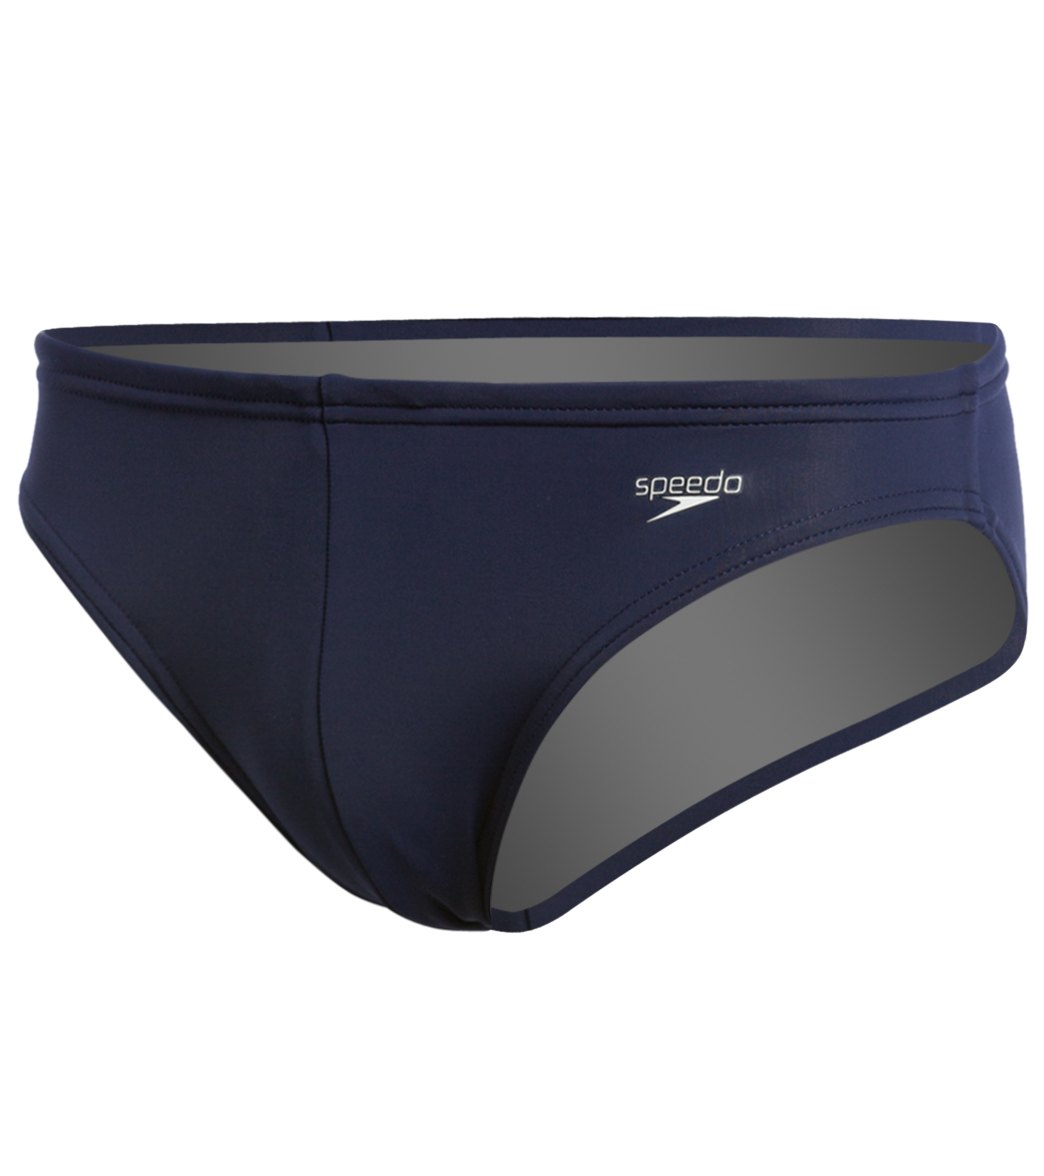 "Speedo Solar 1"" Brief at SwimOutlet.com"